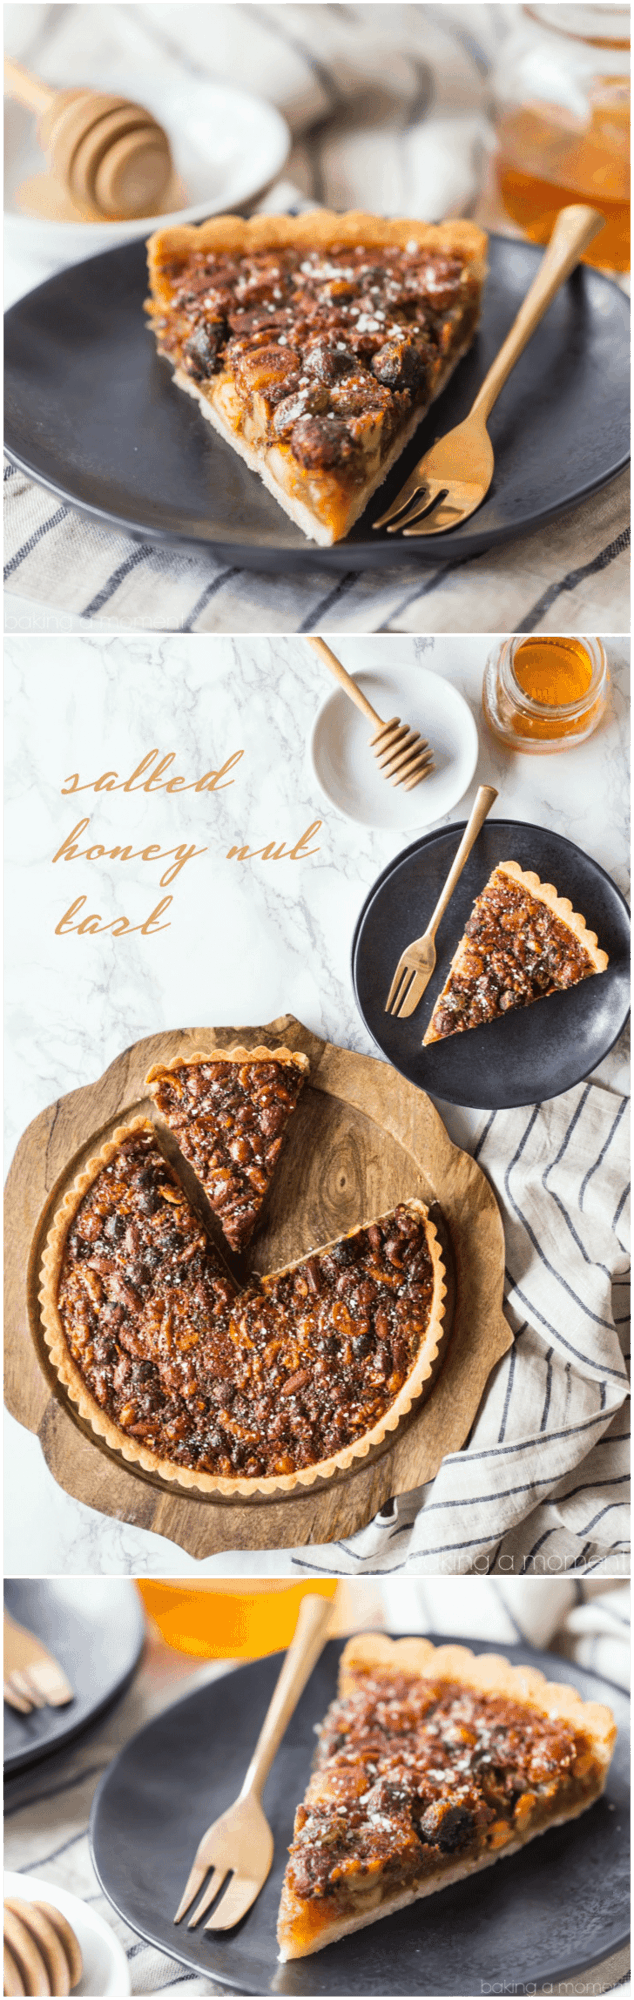 Honey Nut Tart: The sweet, nutty smell of this gooey tart filled my house as it was baking. It was like a warm hug! #honey #nut #tart #fall #dessert